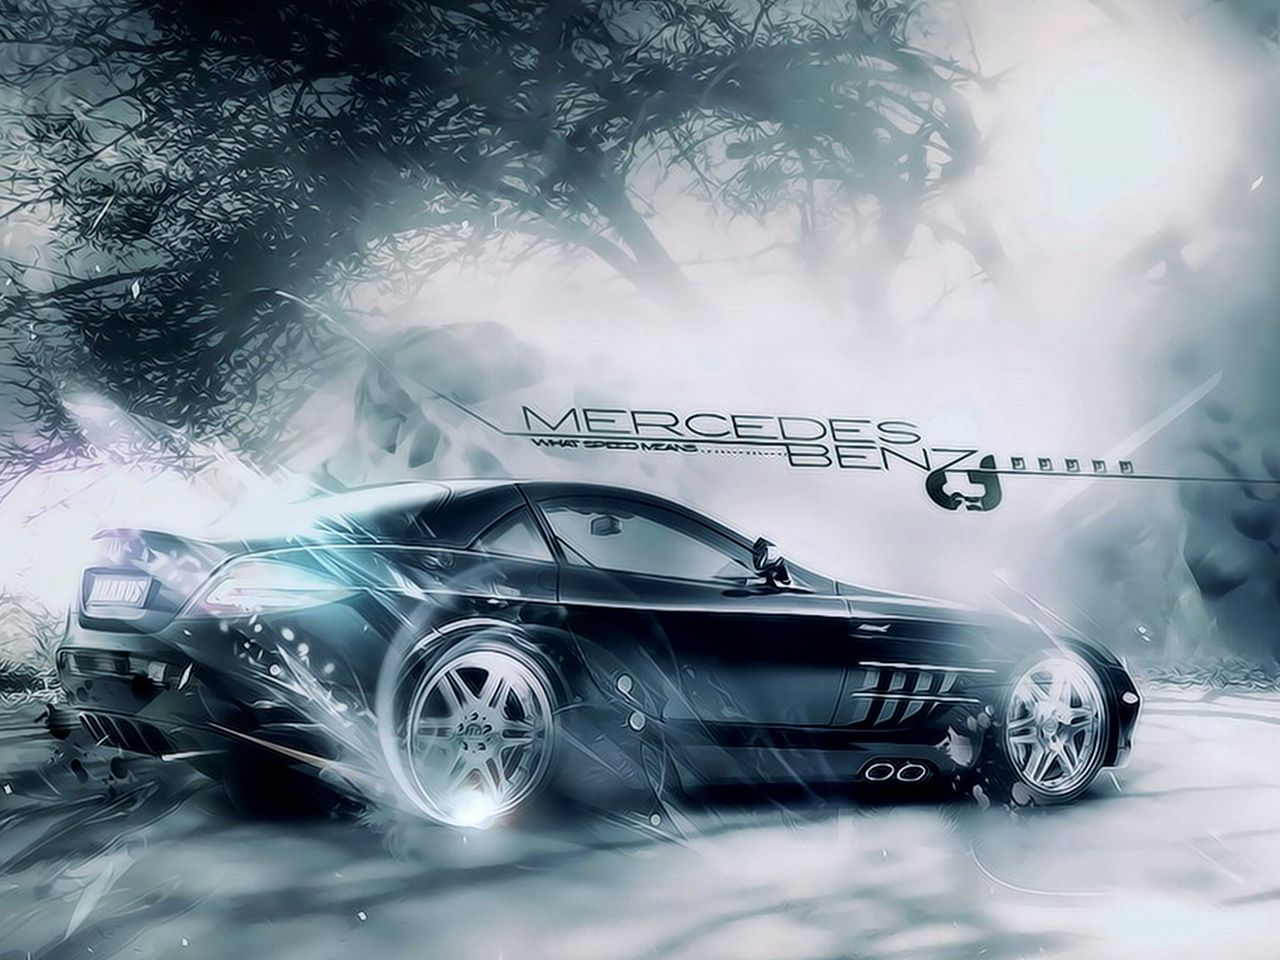 Abstract Car Wallpaper Hd Unique Best Free Od Car Wallpapers o